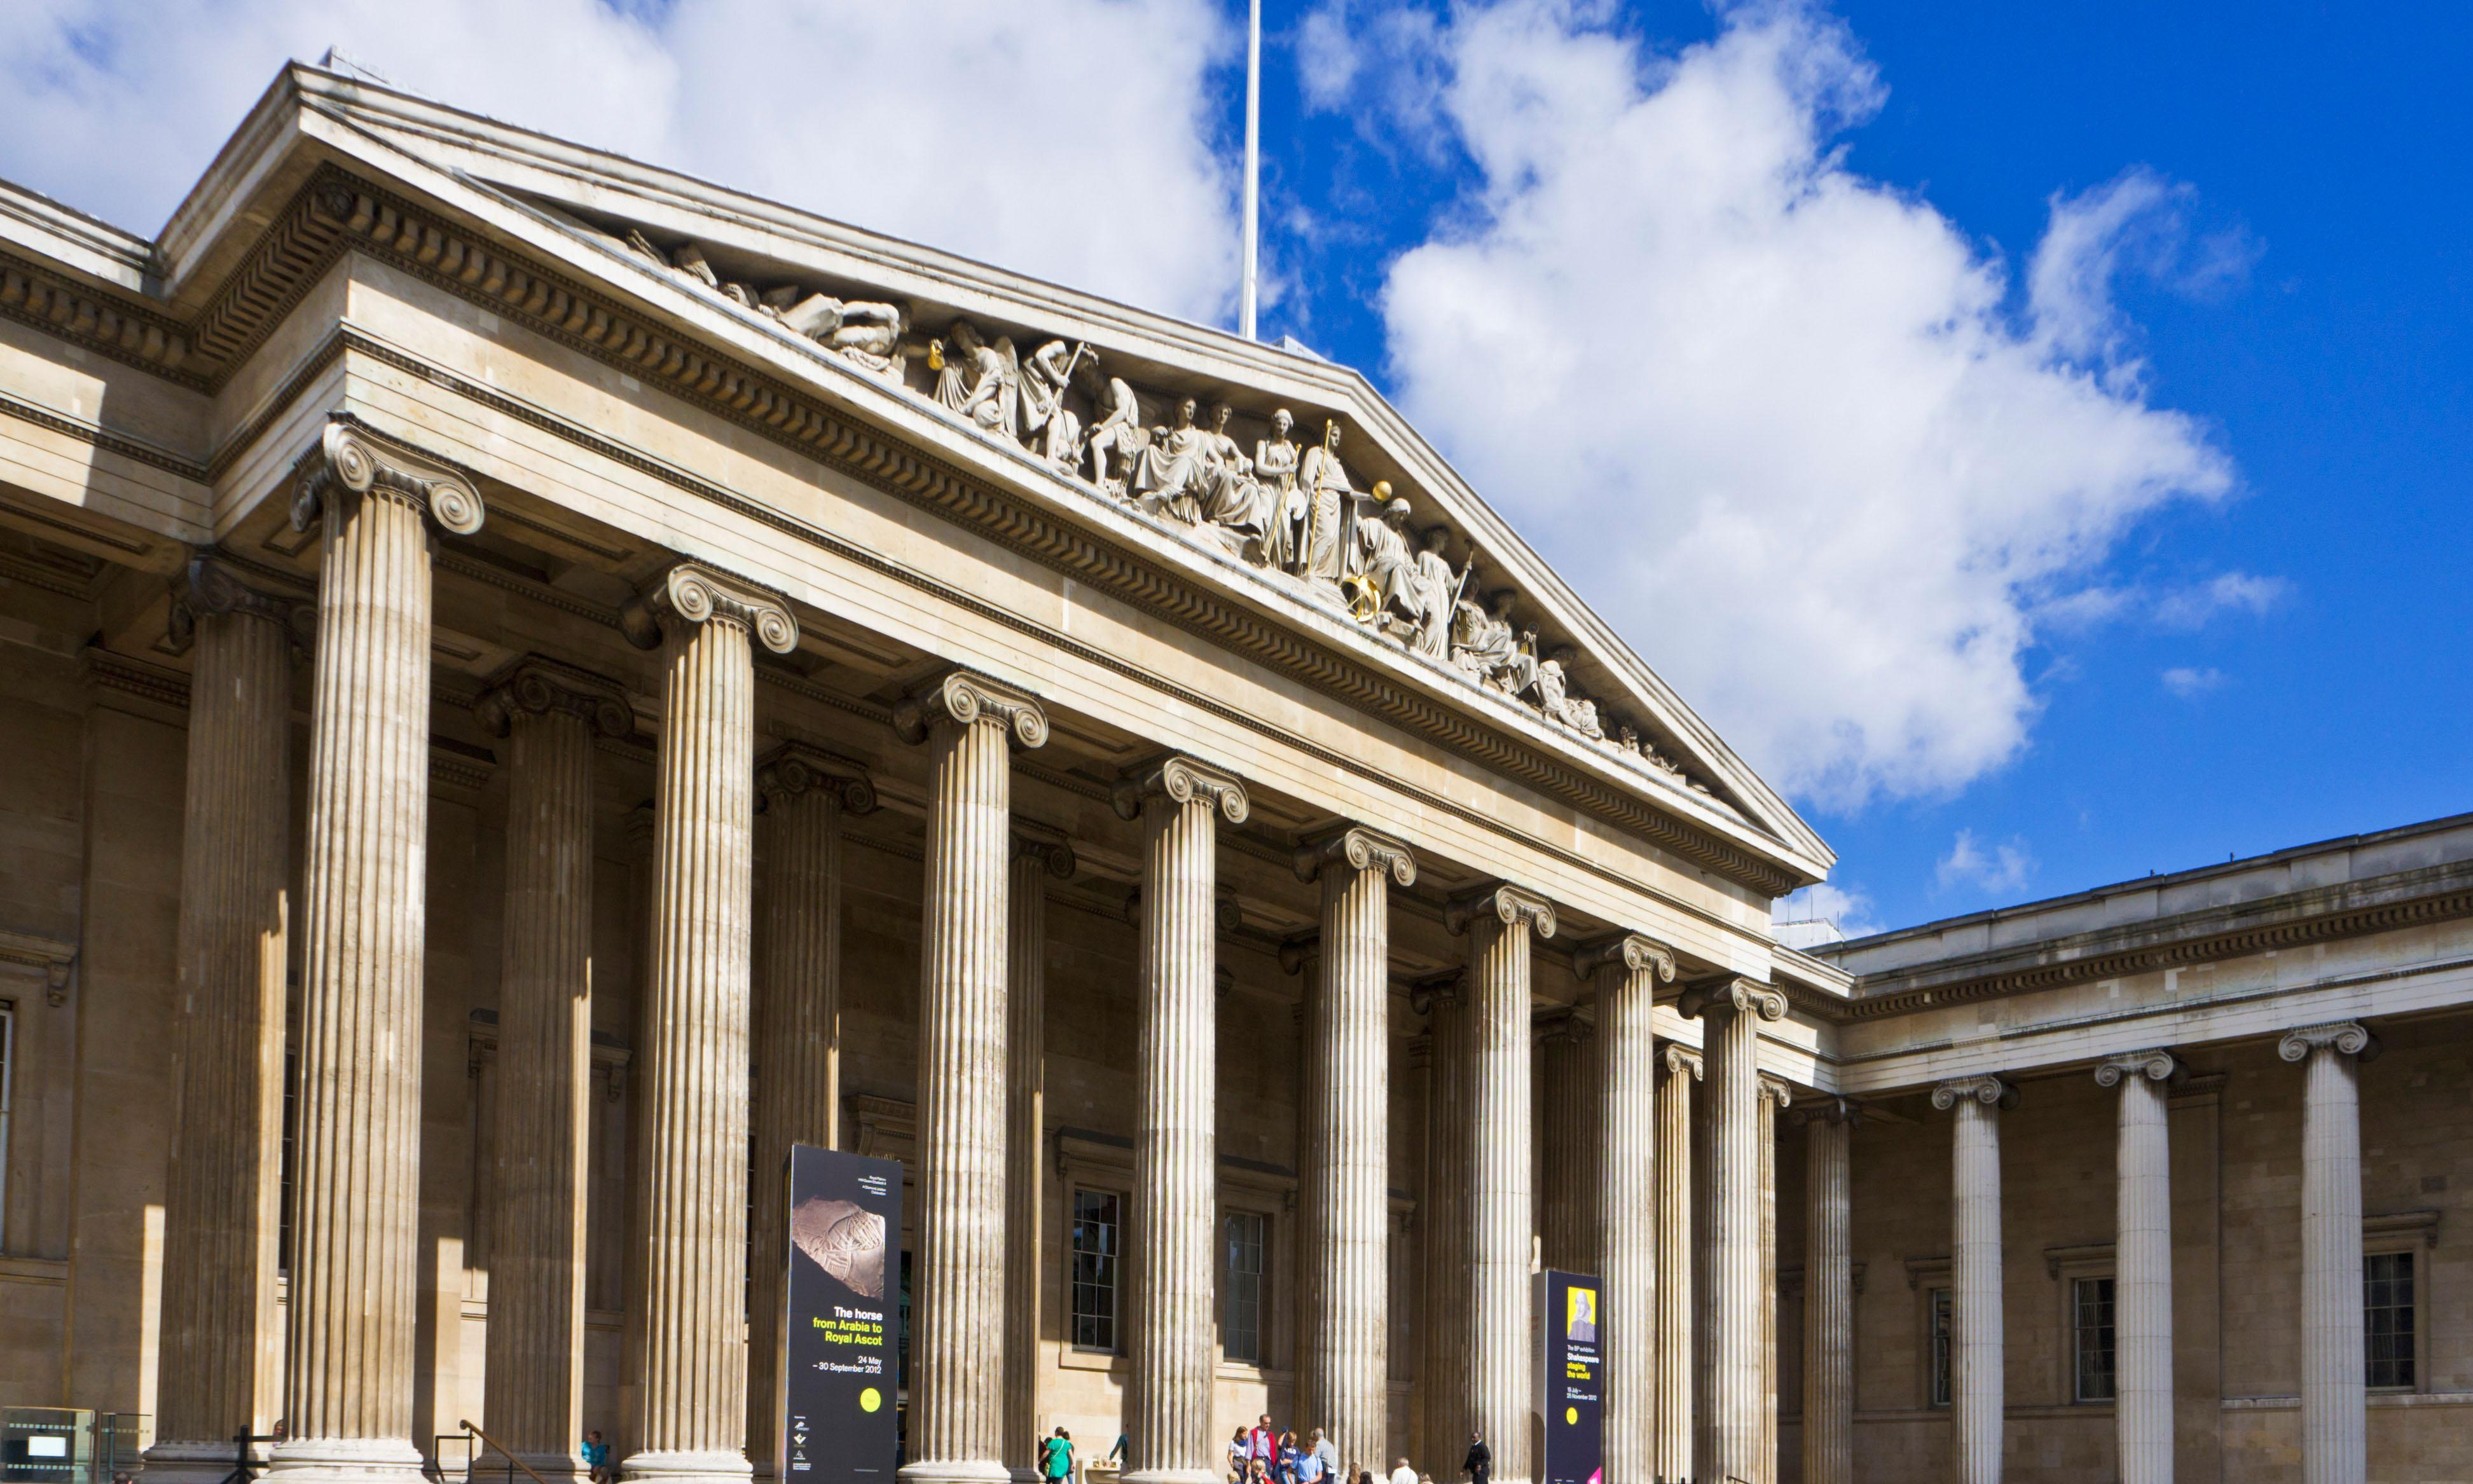 Minister seeks return of Jamaican artefacts from British Museum